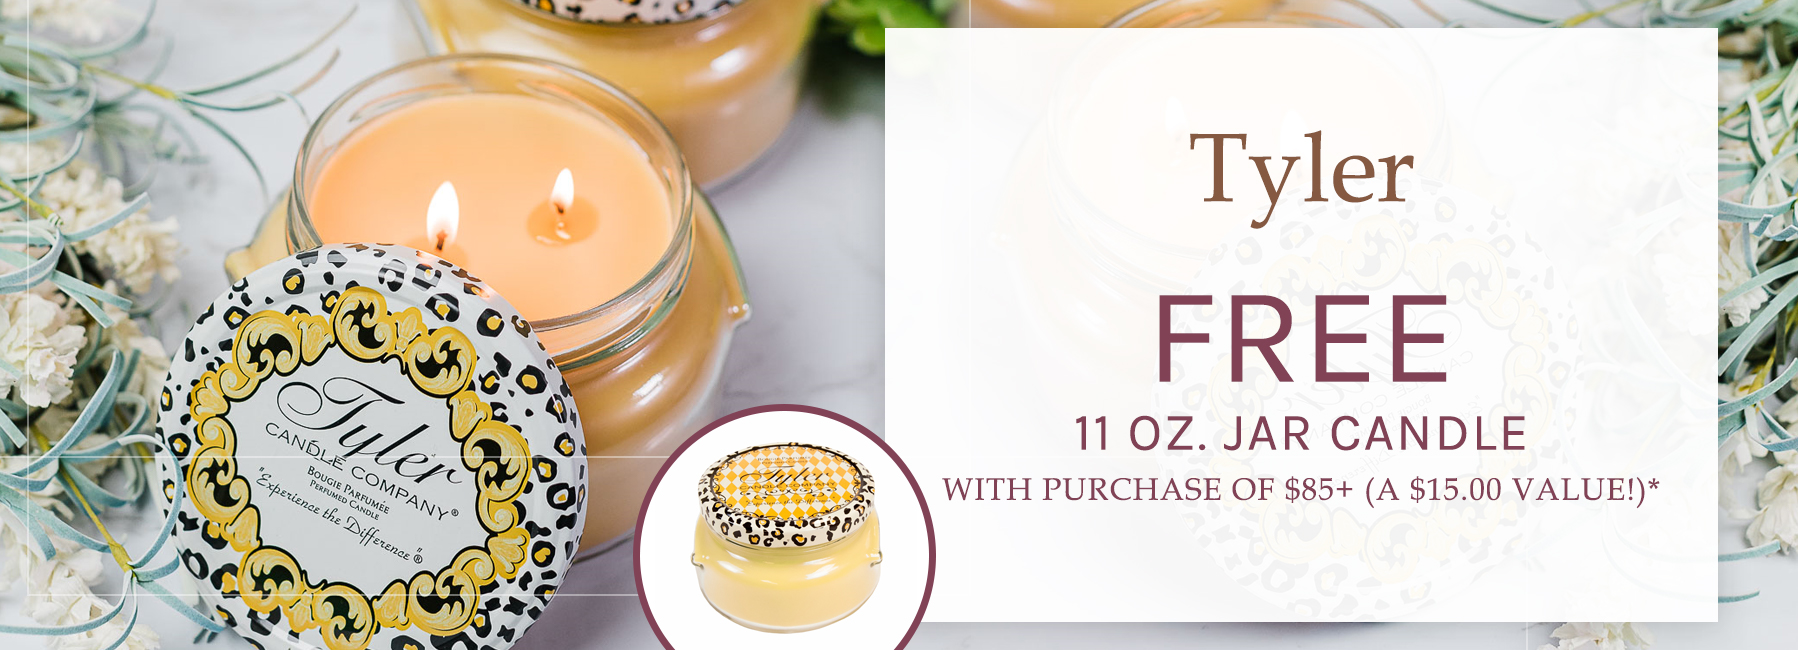 Tyler - FREE 11 Ounce Jar Candle with Purchase of $85+